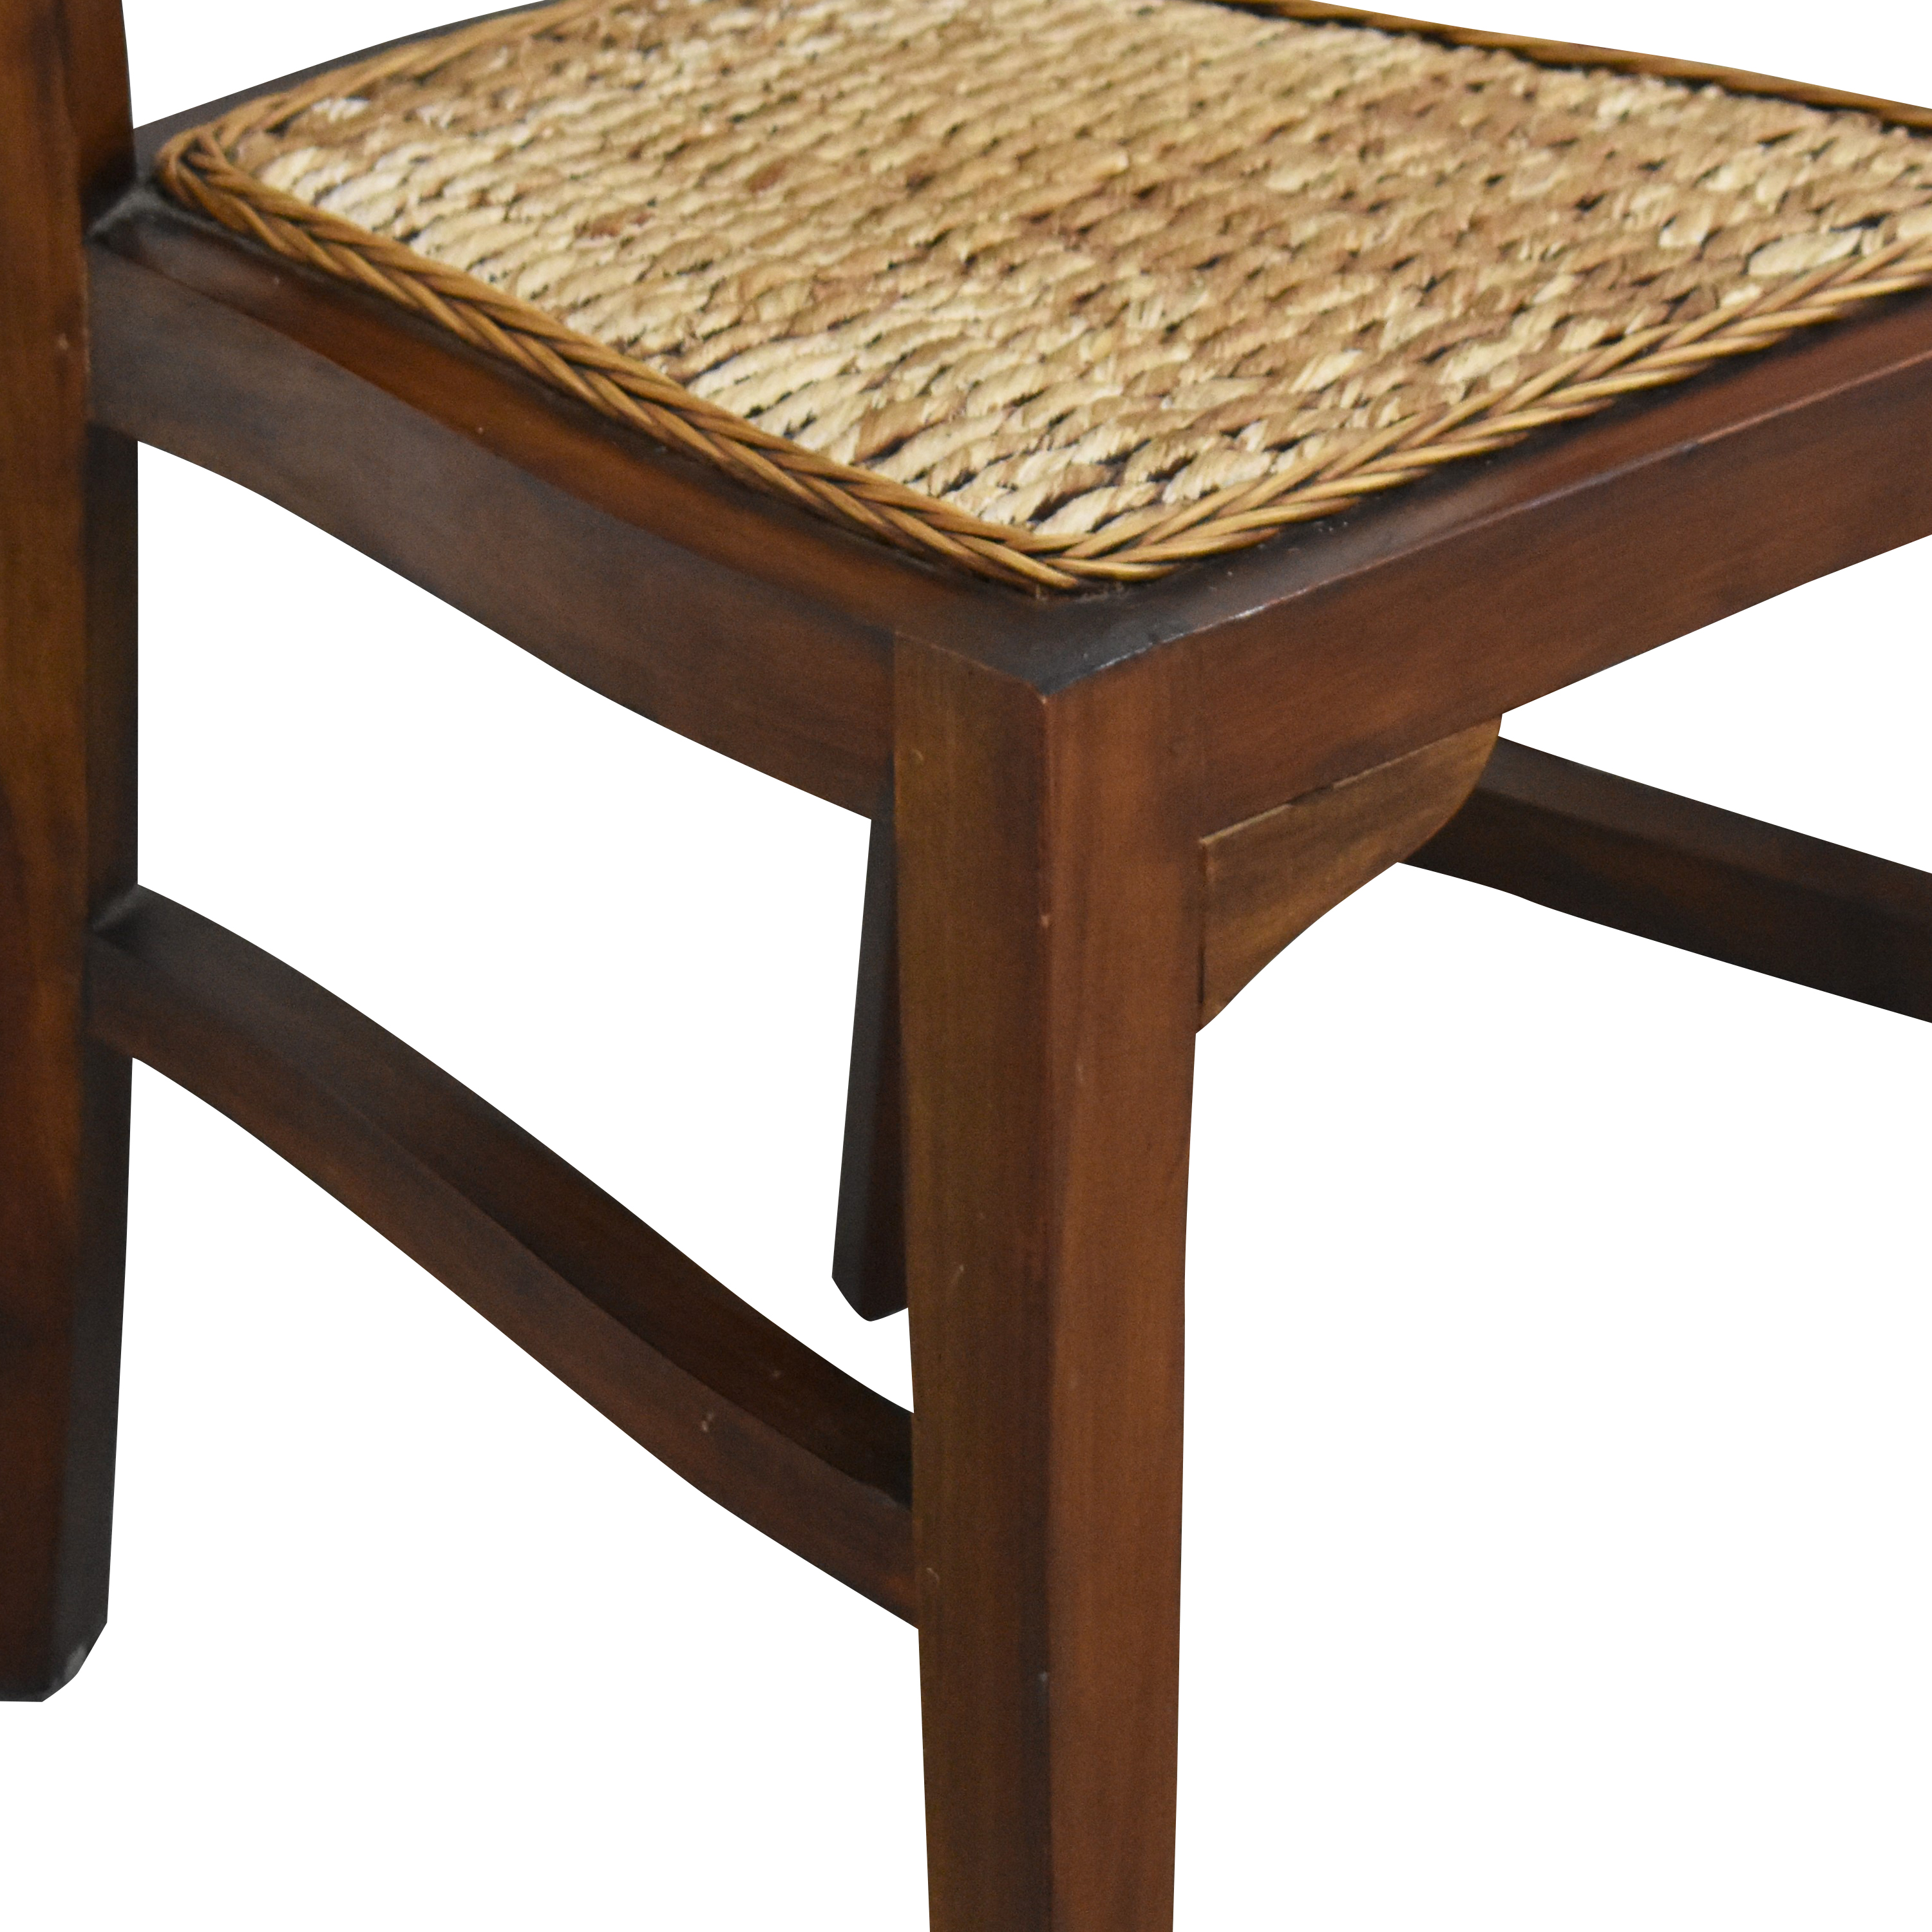 ABC Carpet & Home ABC Carpet & Home Woven Dining Chairs dimensions